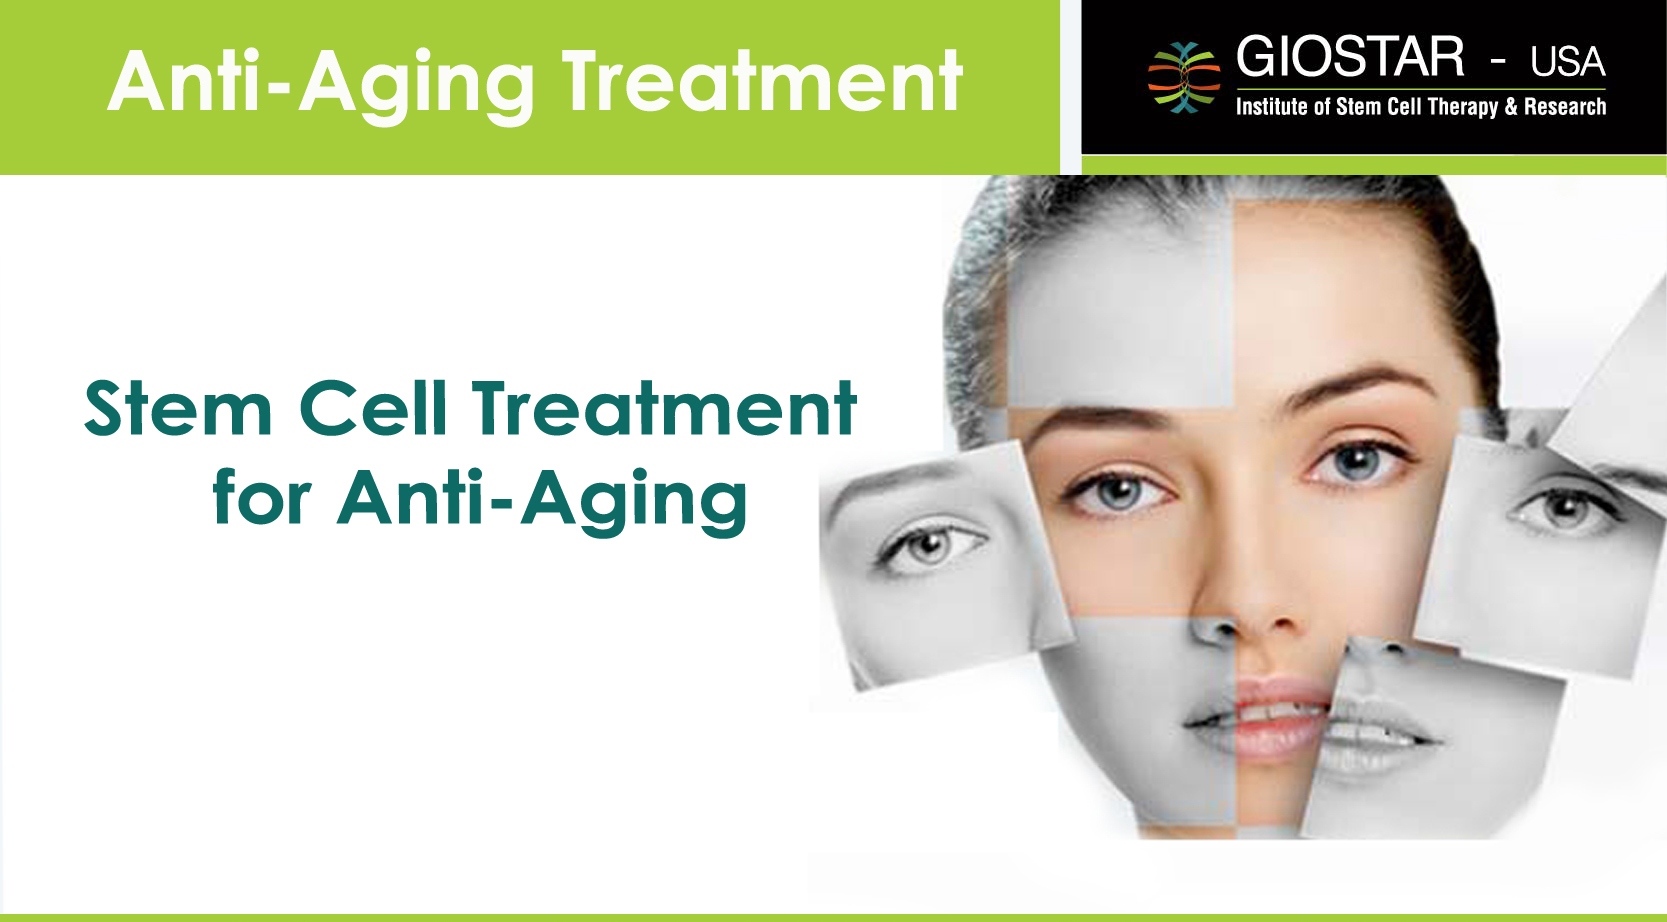 Anti-Aging Treatment - GIOSTAR